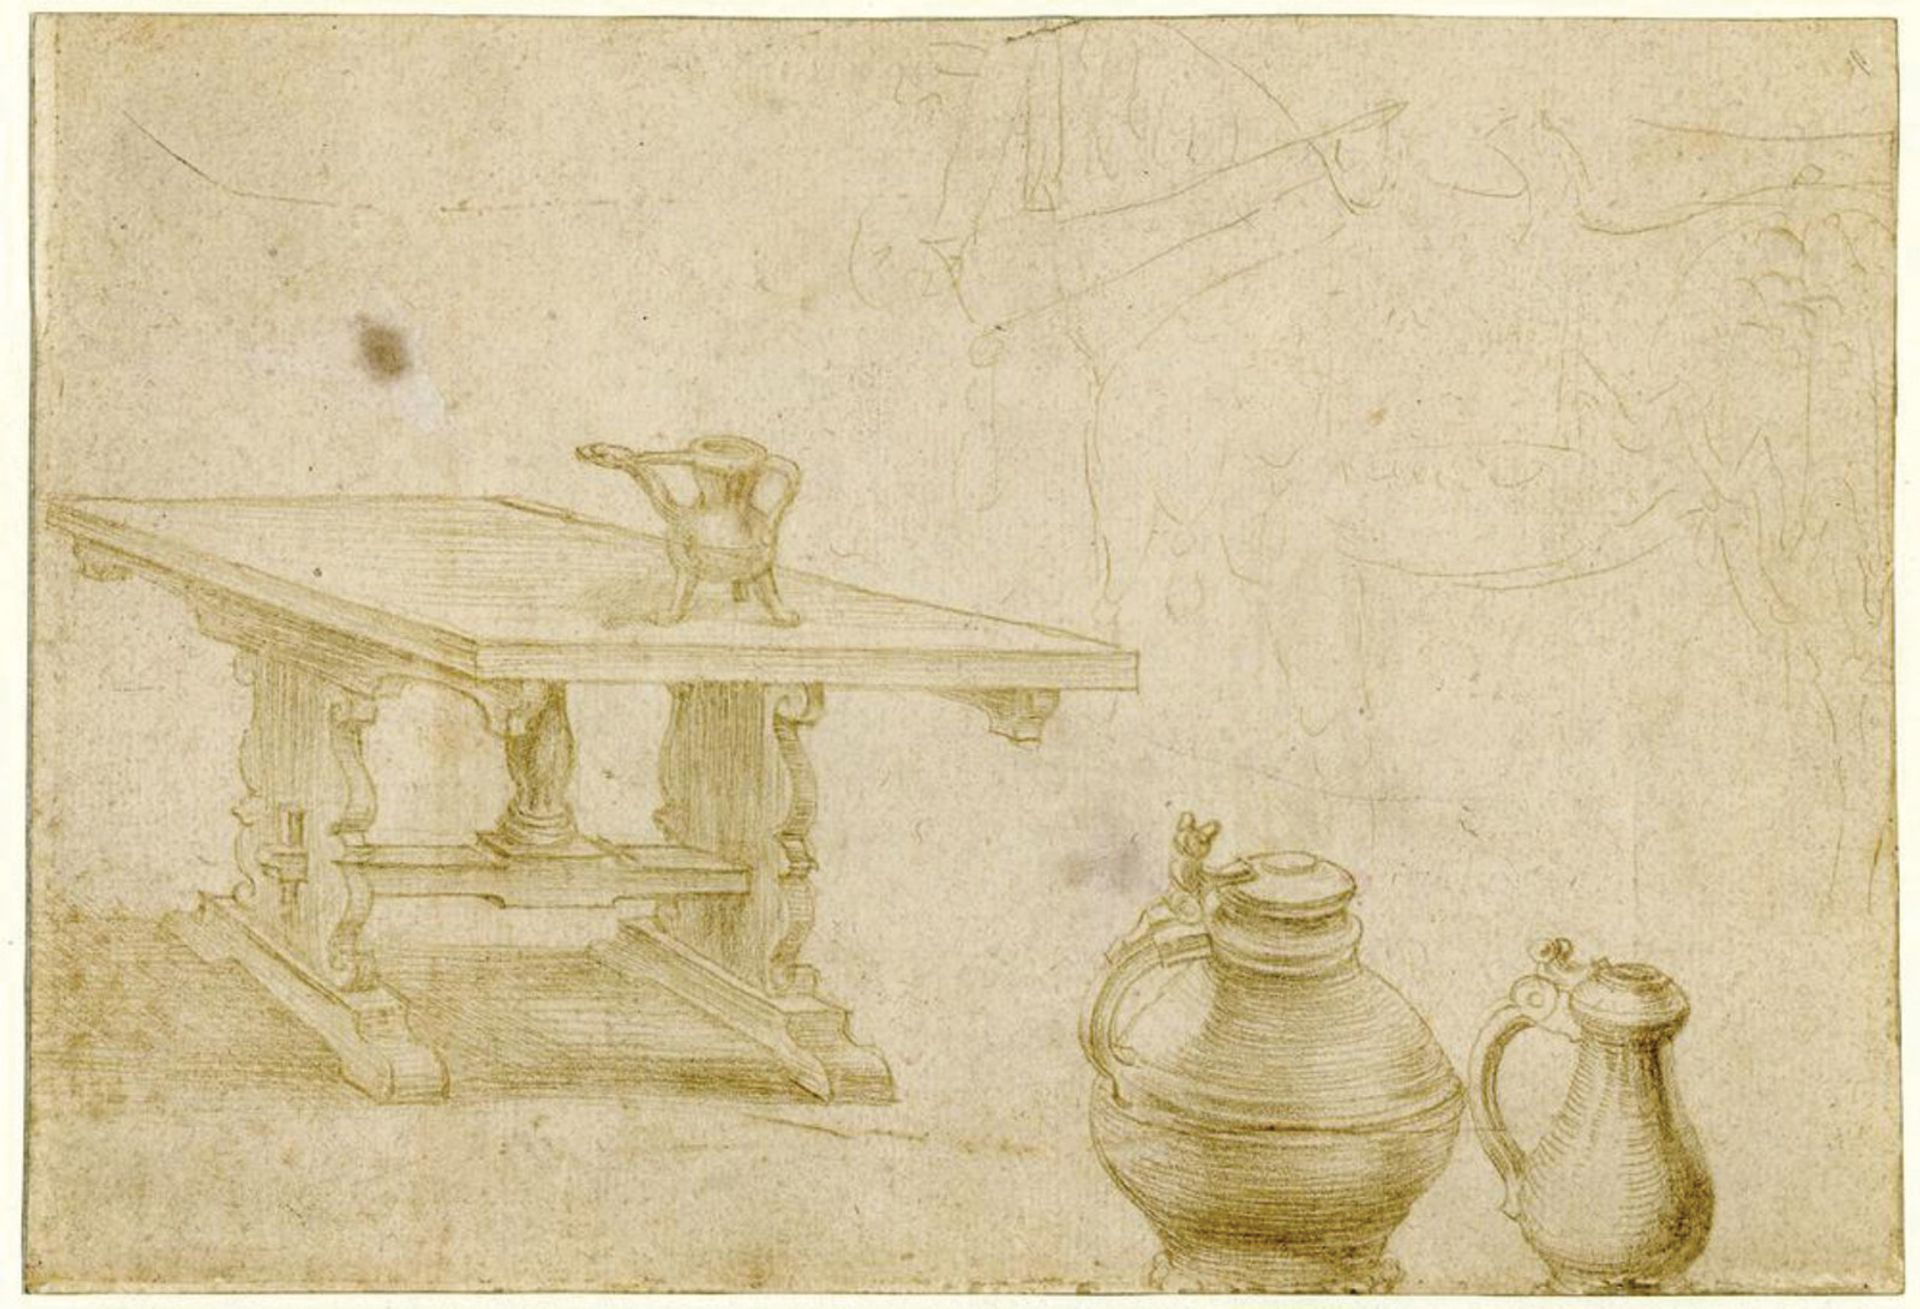 The Albertina's chief curator, Christof Metzger, has linked the British Museum'sdrawing to Zum Spiegel in Aachen, where Dürer tried his luck © The Trustees of the British Museum